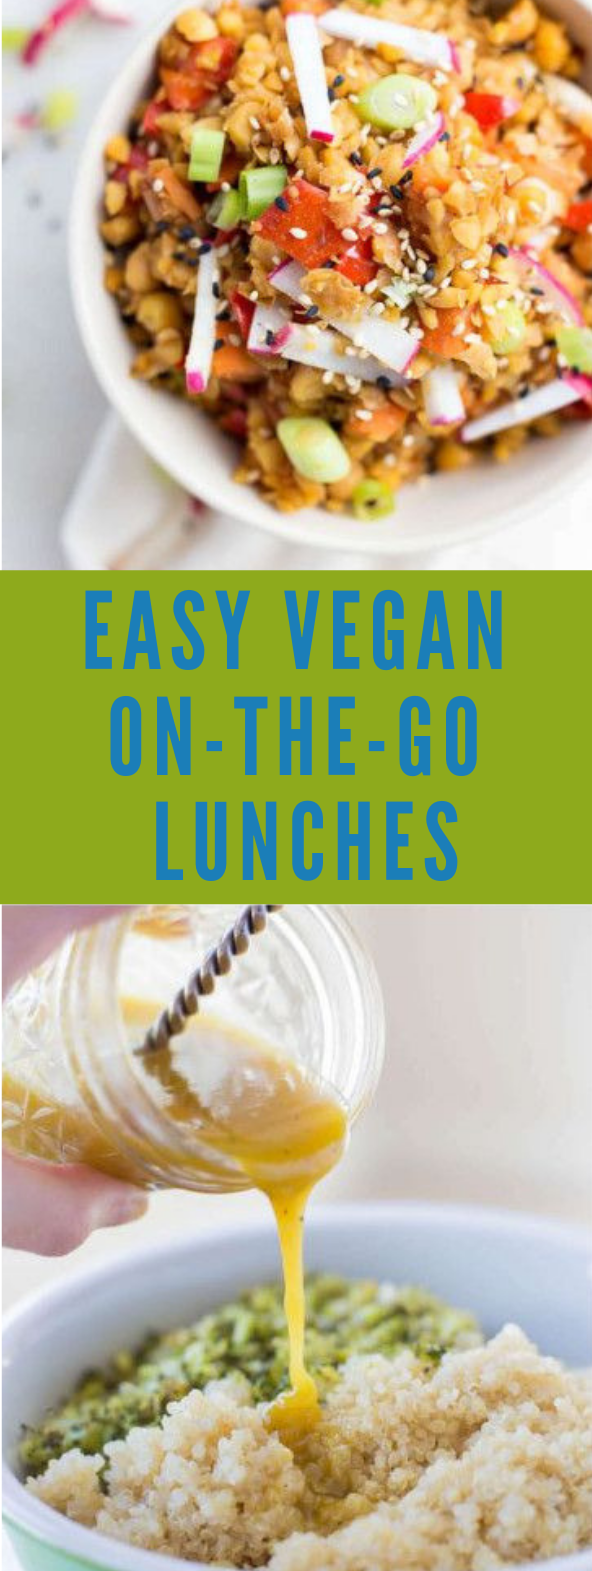 EASY VEGAN ON-THE-GO LUNCHES #vegetarian #brocoli